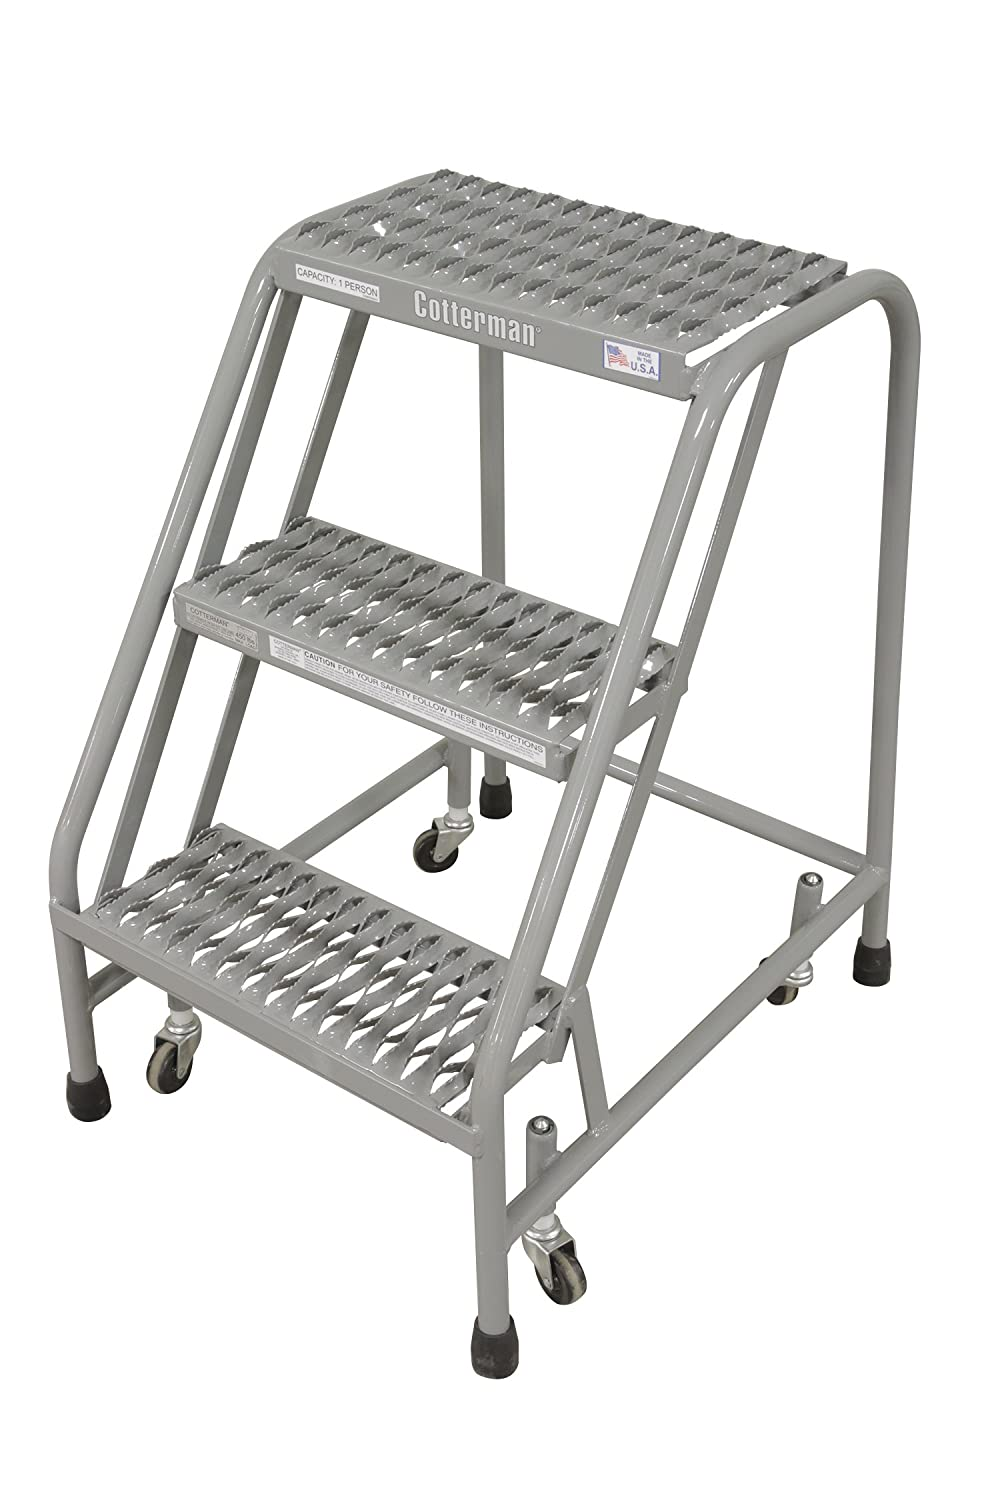 Surprising Cotterman 1003N1820A3E10B3C1P1 All Welded Ready To Use Rolling Steel Safety Ladder 3 Step 30 Top Step Height Serrated Tread 450 Lb Capacity Pdpeps Interior Chair Design Pdpepsorg